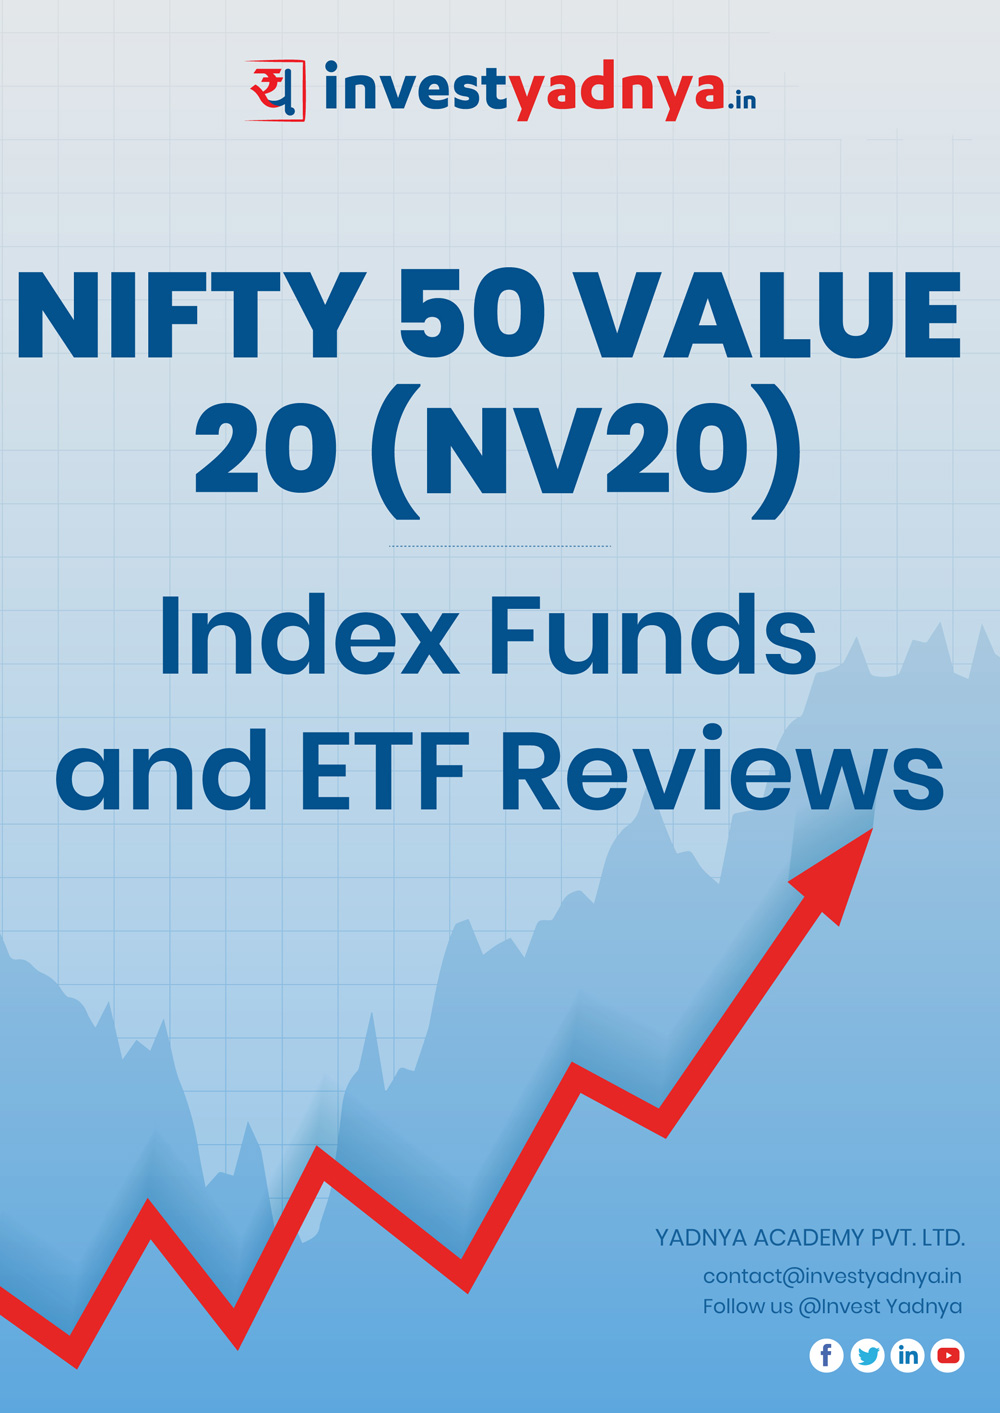 Index/ETF Category - NIFTY 50 Value 20 (NV20) Detailed Analysis & Review based on Mar 31st, 2019 data. Most Comprehensive, unique and detailed ETF/Index reviews based on Yadnya's proprietary methodology of Green, Yellow & Red Star.